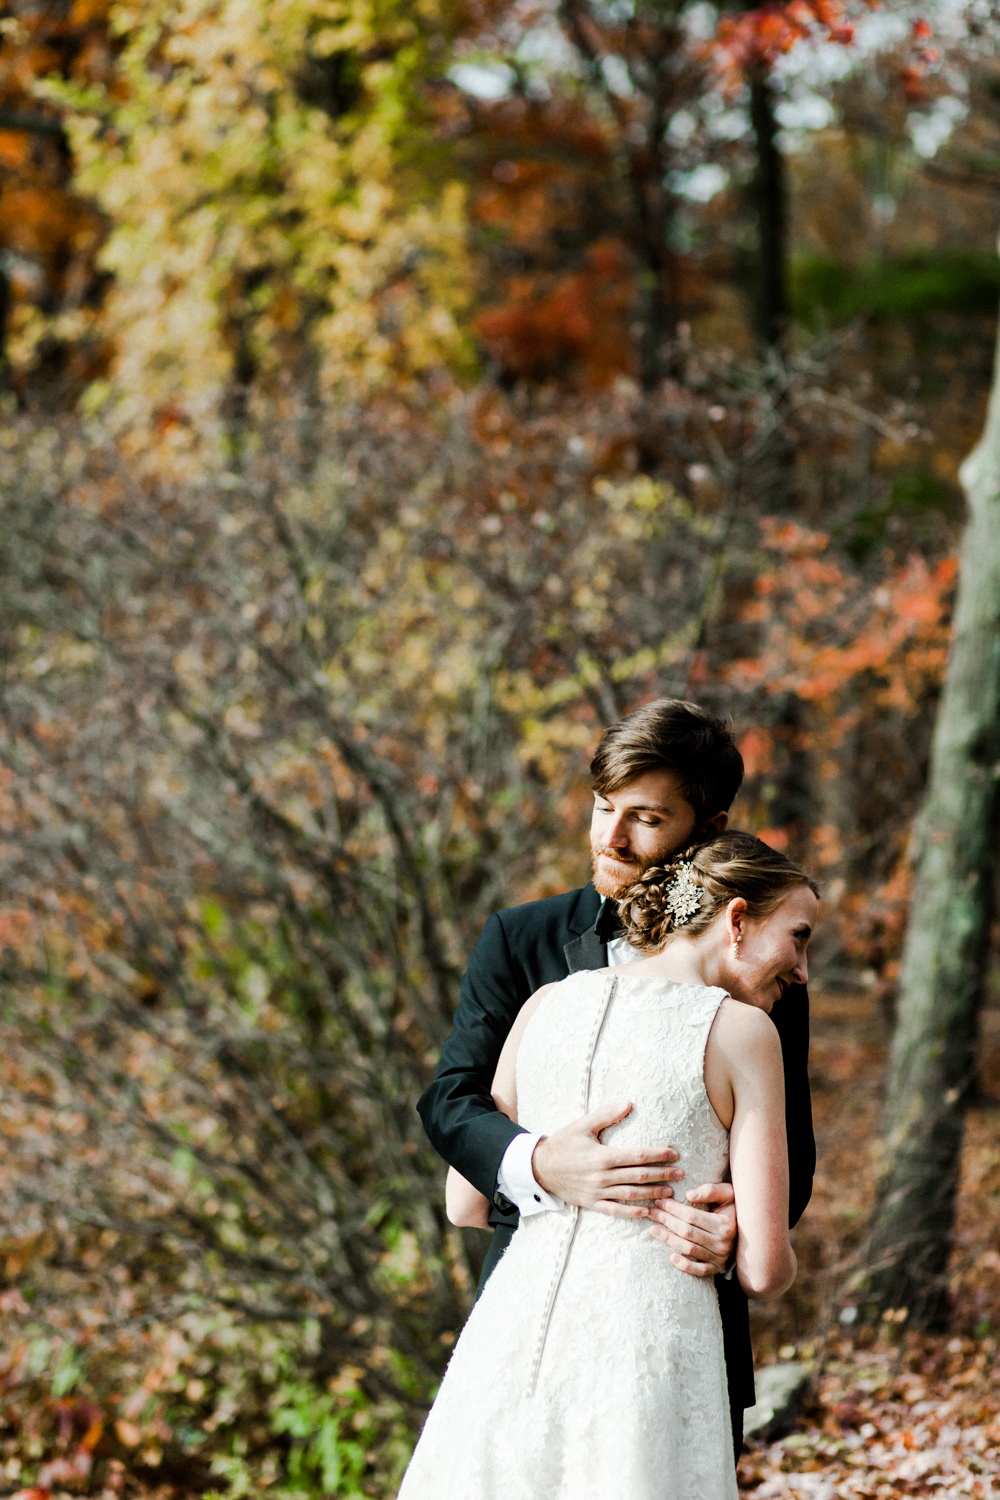 lissie_loomis_photo_nyc_brooklyn_wedding_engagement_photographer_photography-27.JPG